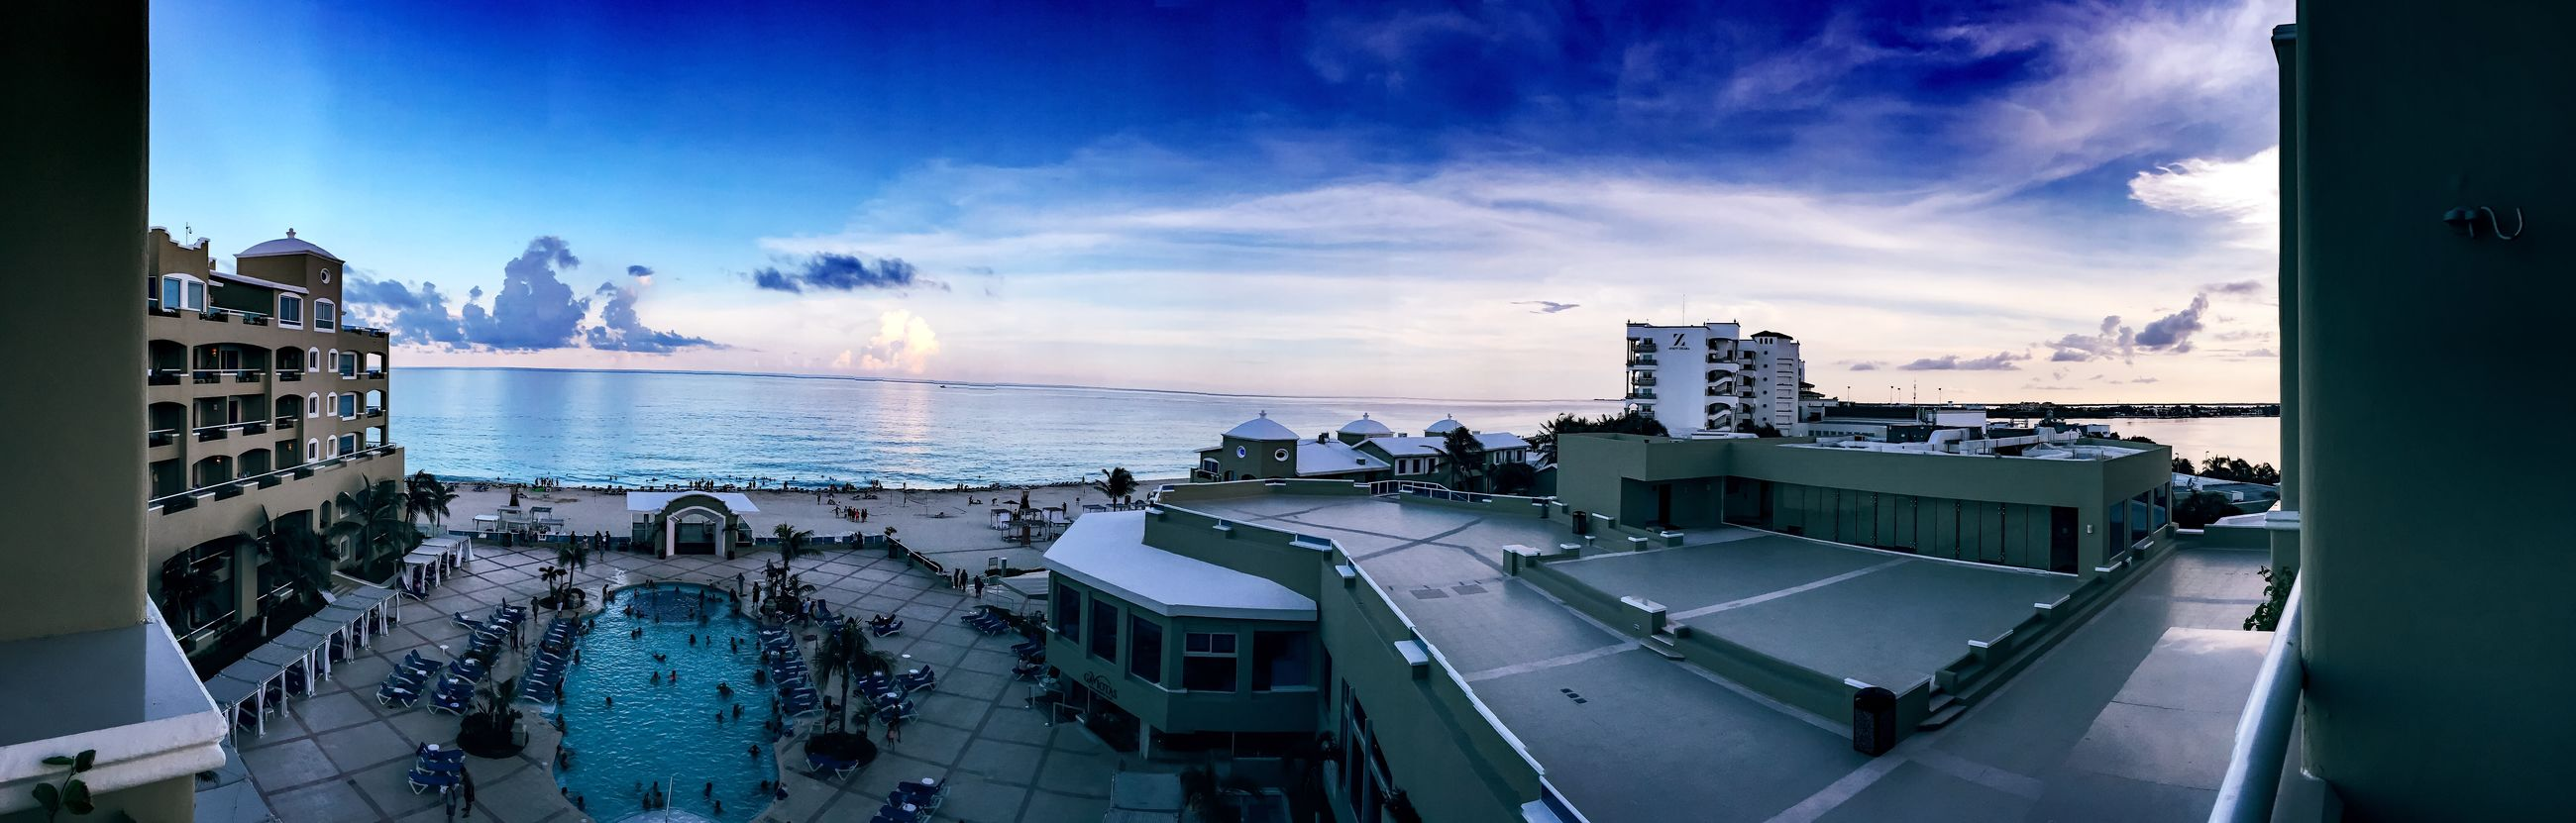 sky, building exterior, architecture, sea, built structure, blue, water, horizon over water, cloud - sky, panoramic, sunlight, city, cloud, outdoors, no people, auto post production filter, nature, residential structure, day, sunset